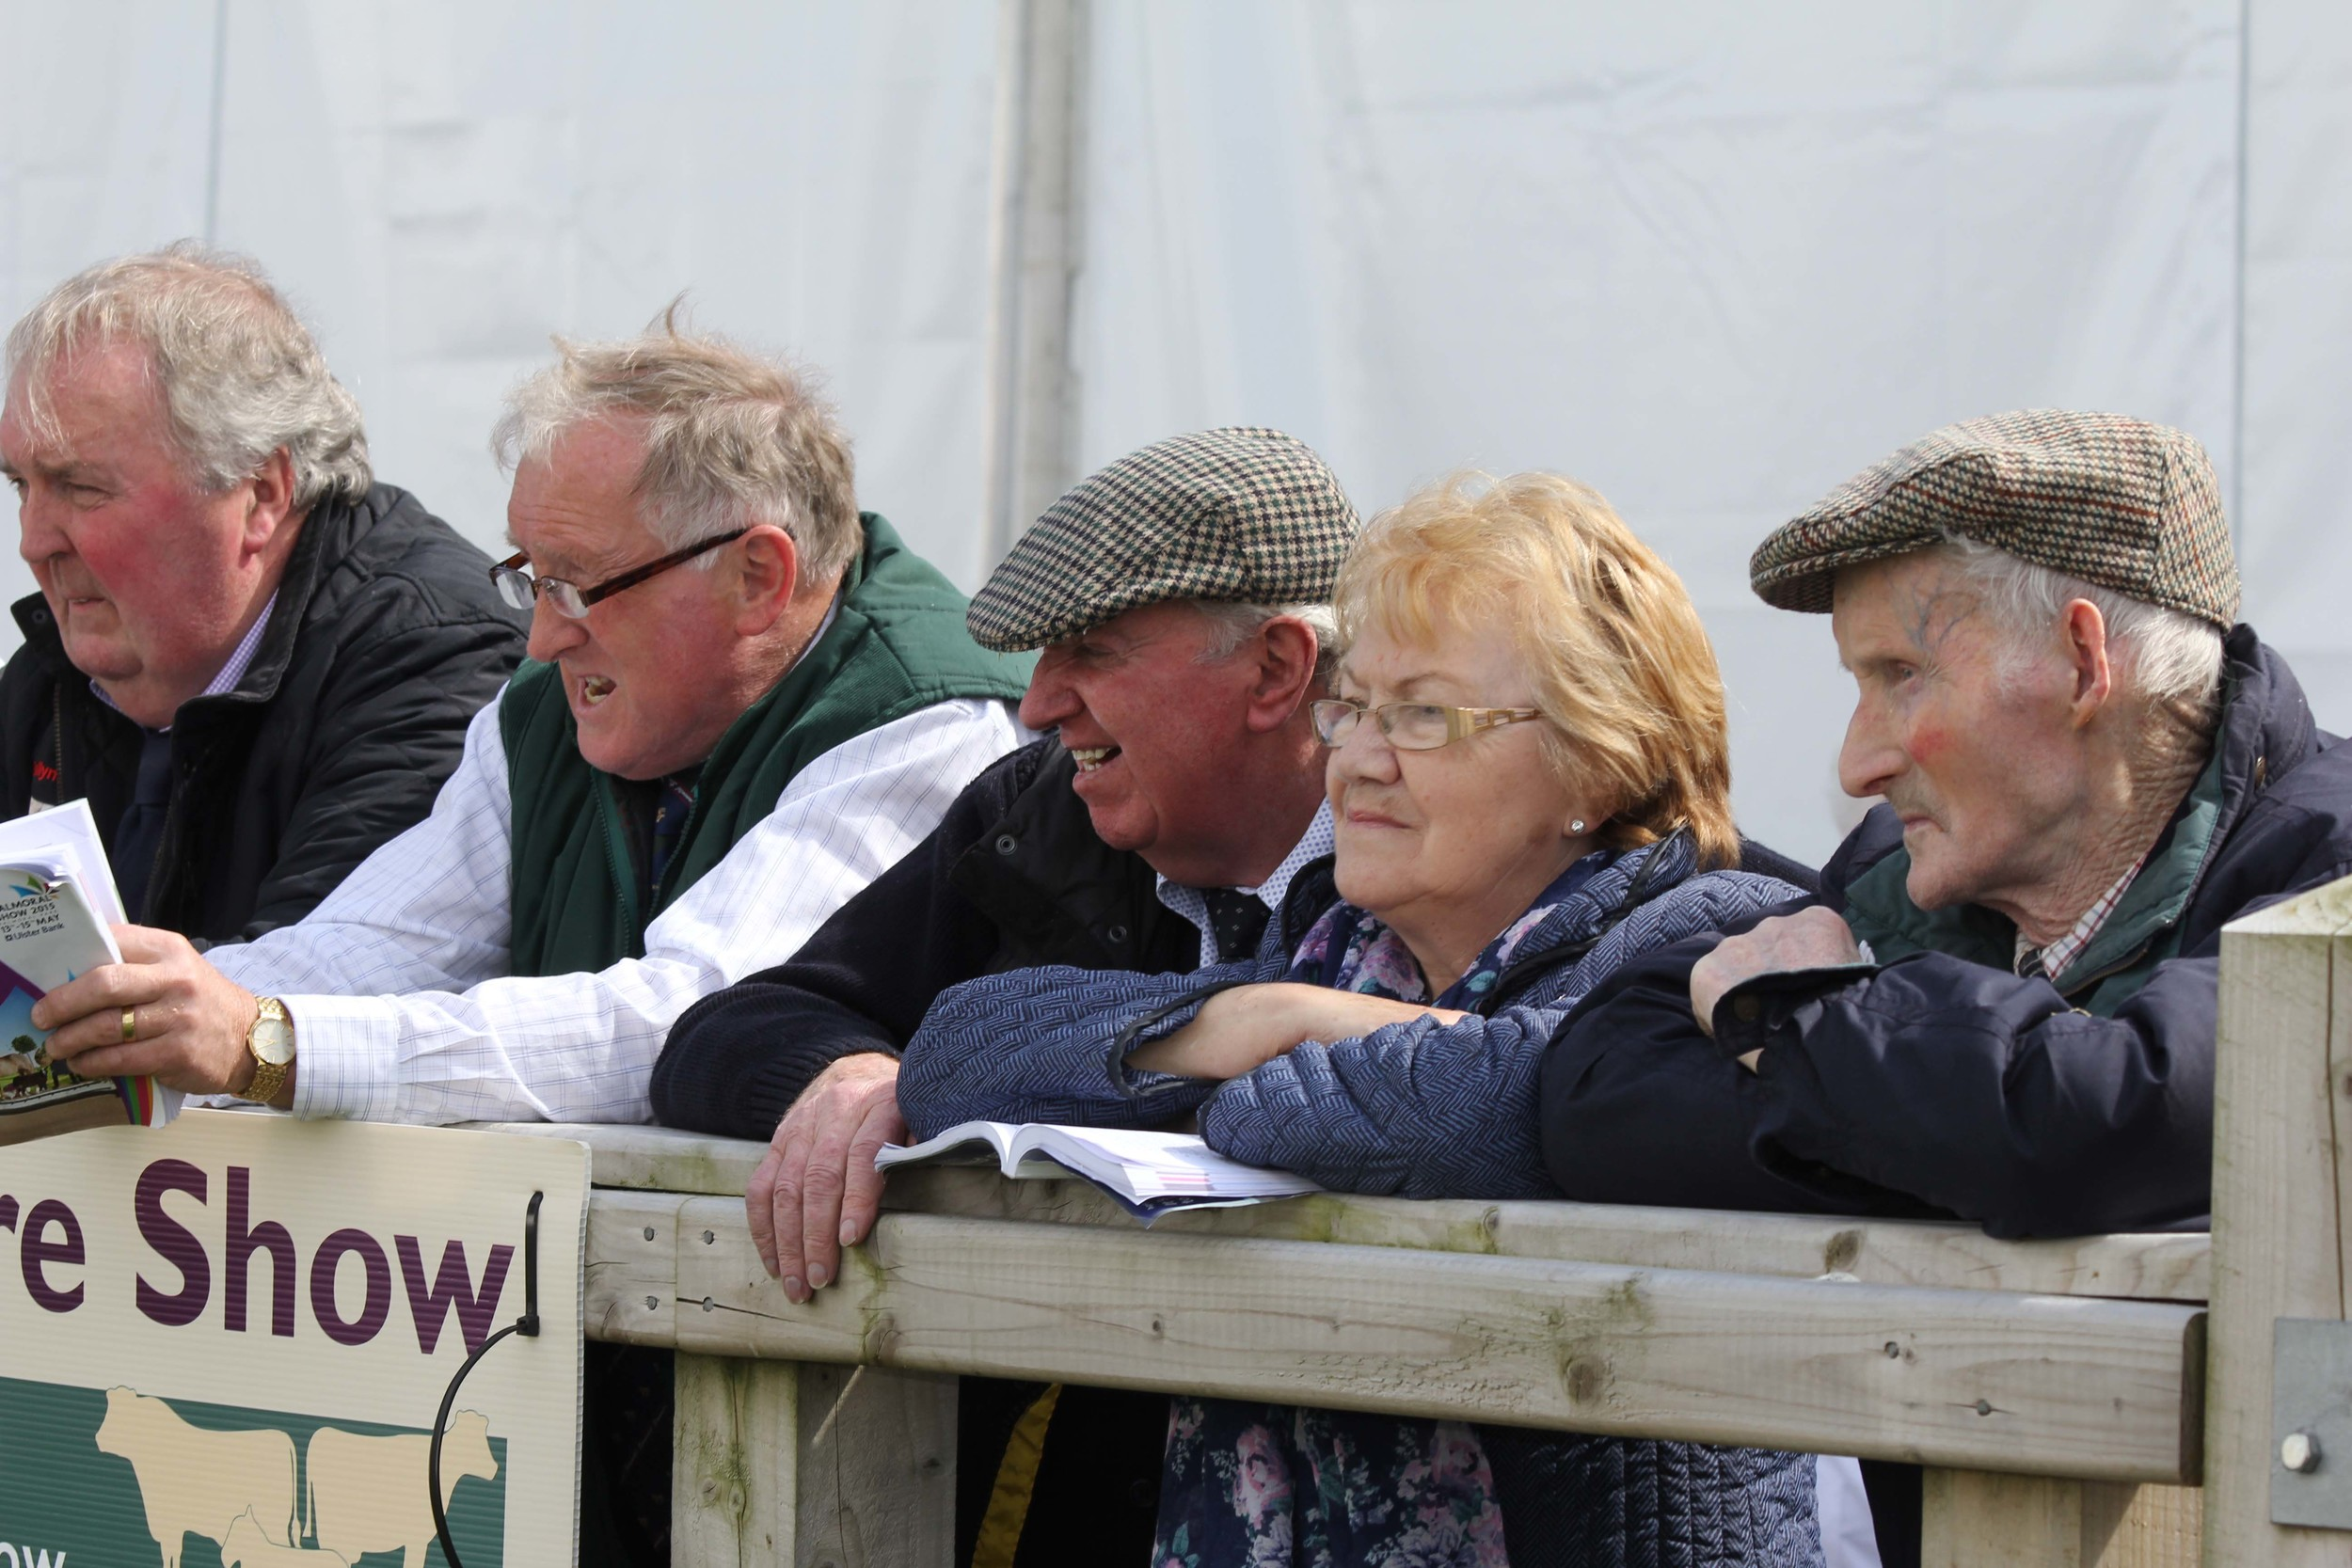 Spectators around the showring at Balmoral Show.